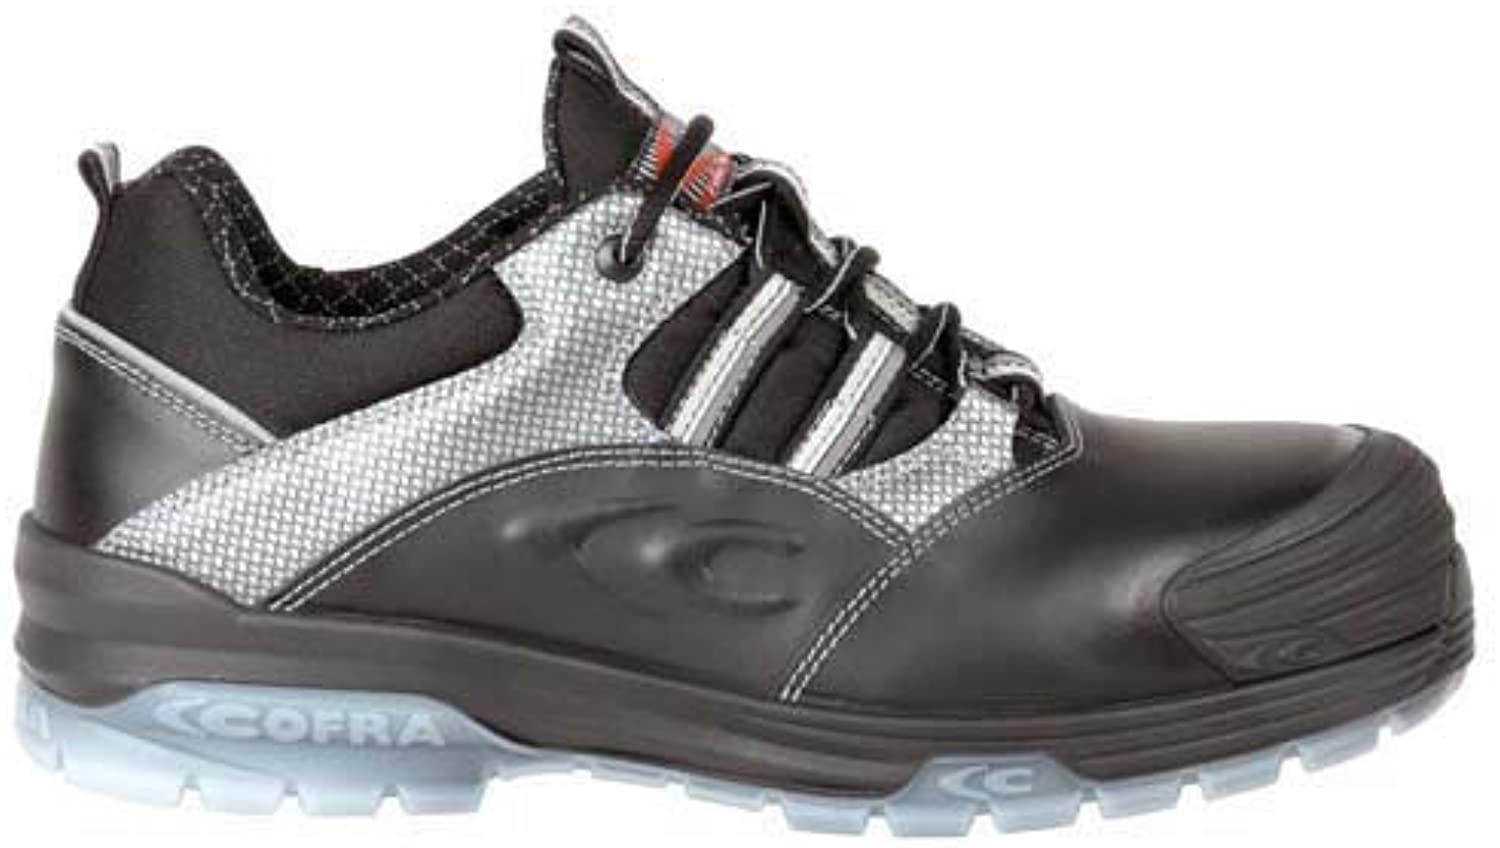 cofra 20620-000.w37 chaussures